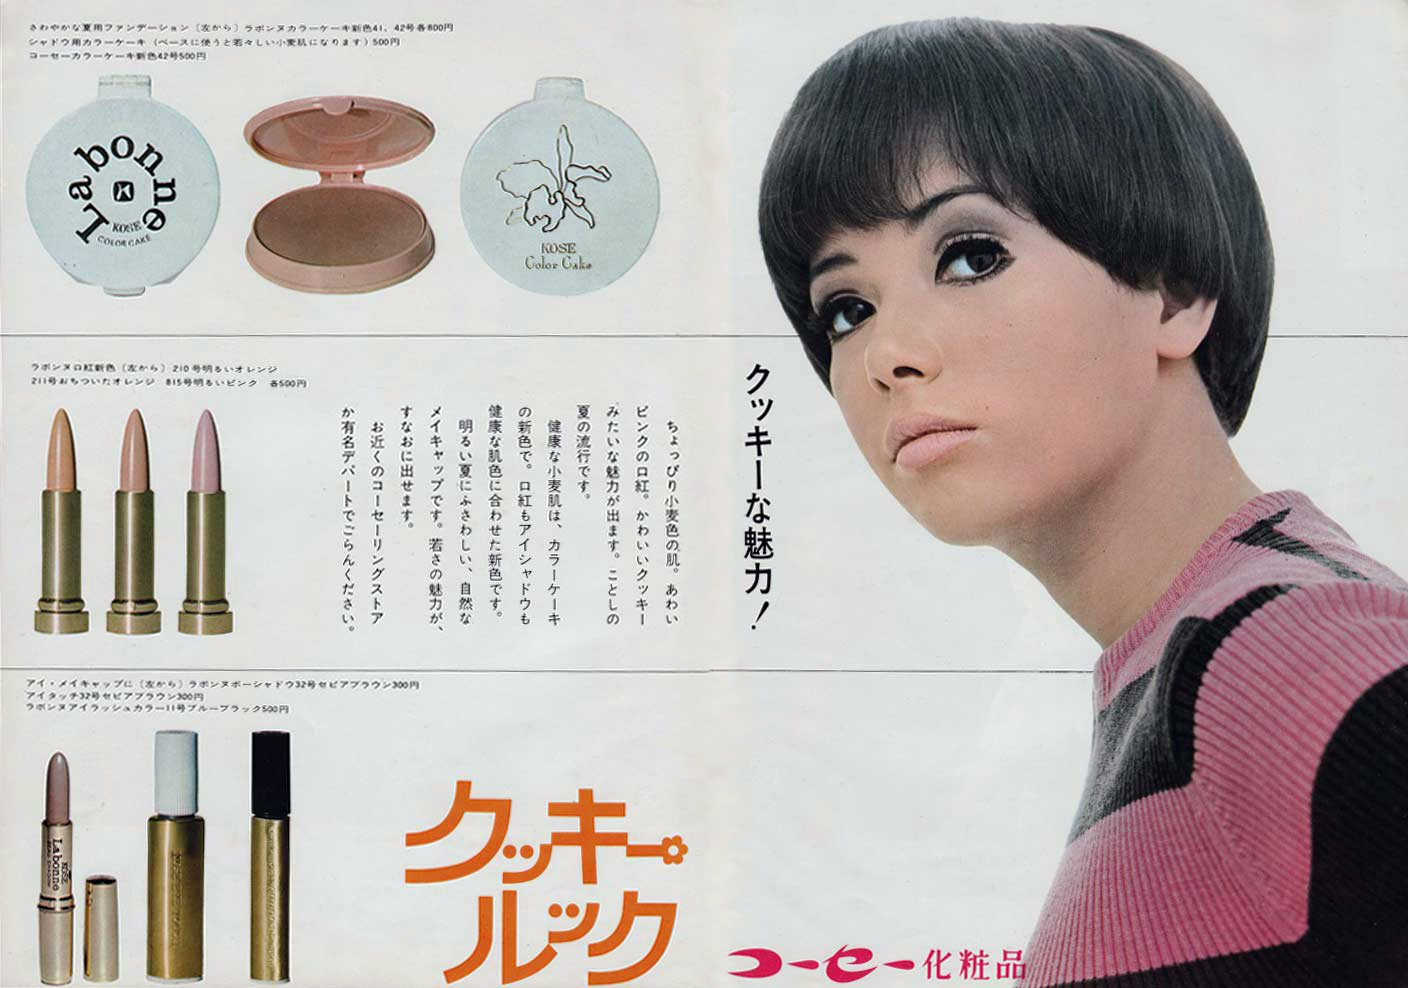 Japanese Make-up Advert